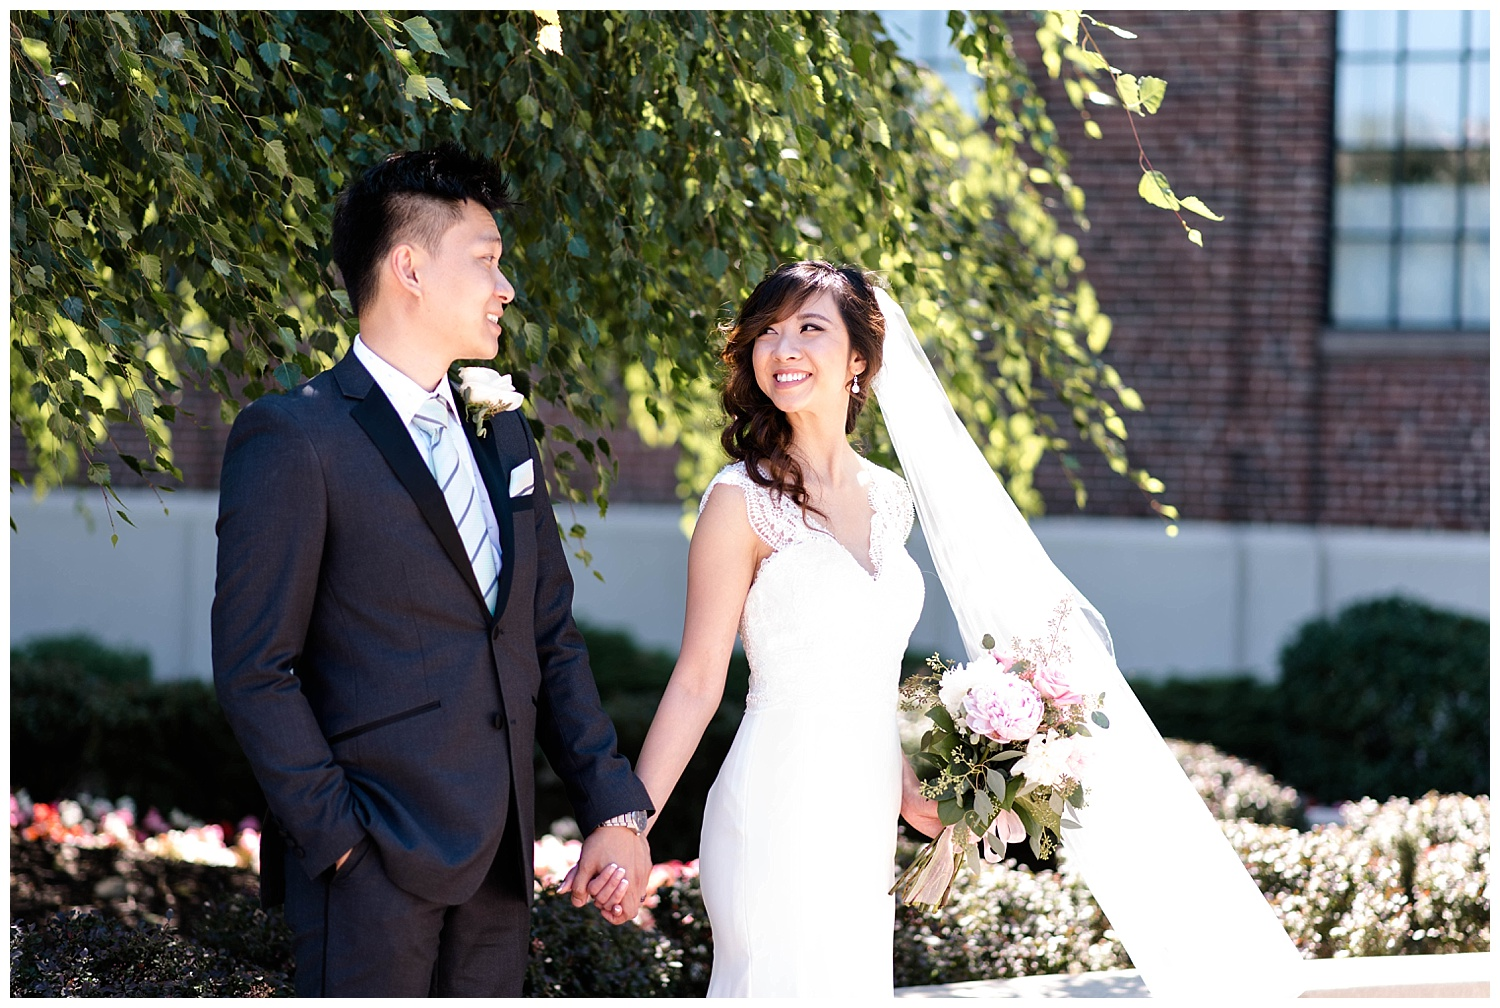 Weddings_by_Raisa_Photography_Saint_Mary_Magdalen_New_Vintage_Grand_Rapids_Michigan_Wedding_Photographer_0094.jpg